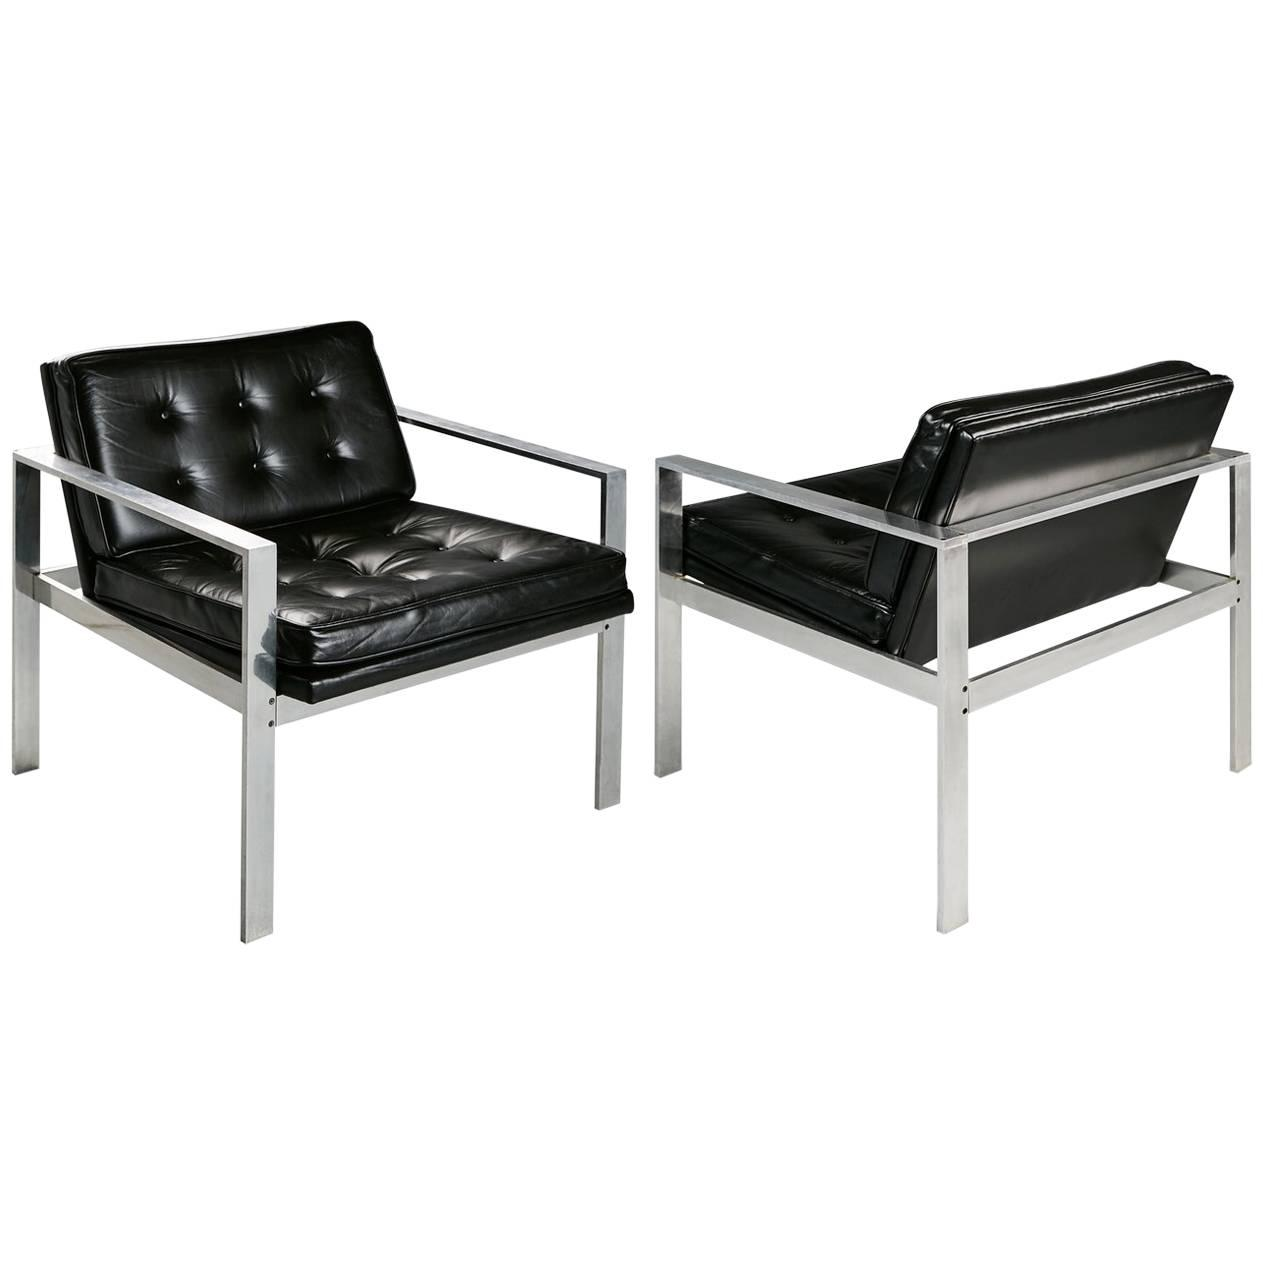 Harvey Probber Aluminum and Black Tufted Leather Armchairs, 1960s For Sale